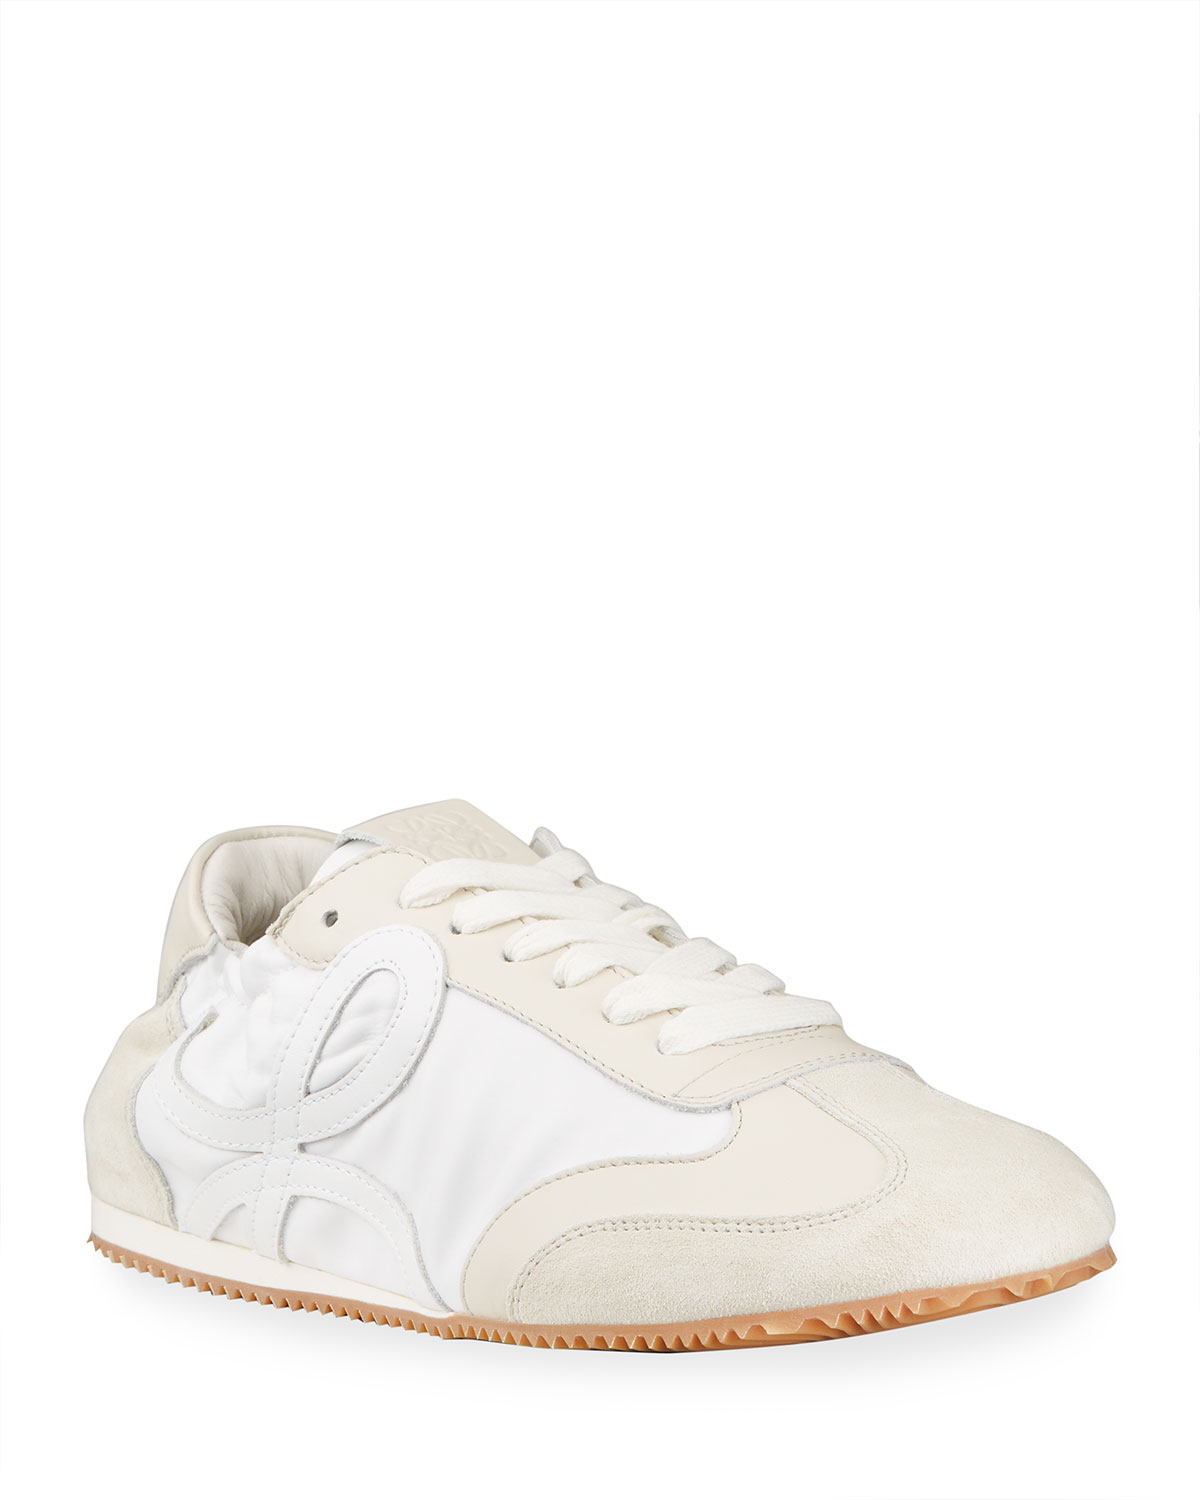 Loewe MIXED LEATHER BALLET RUNNER SNEAKERS, WHITE